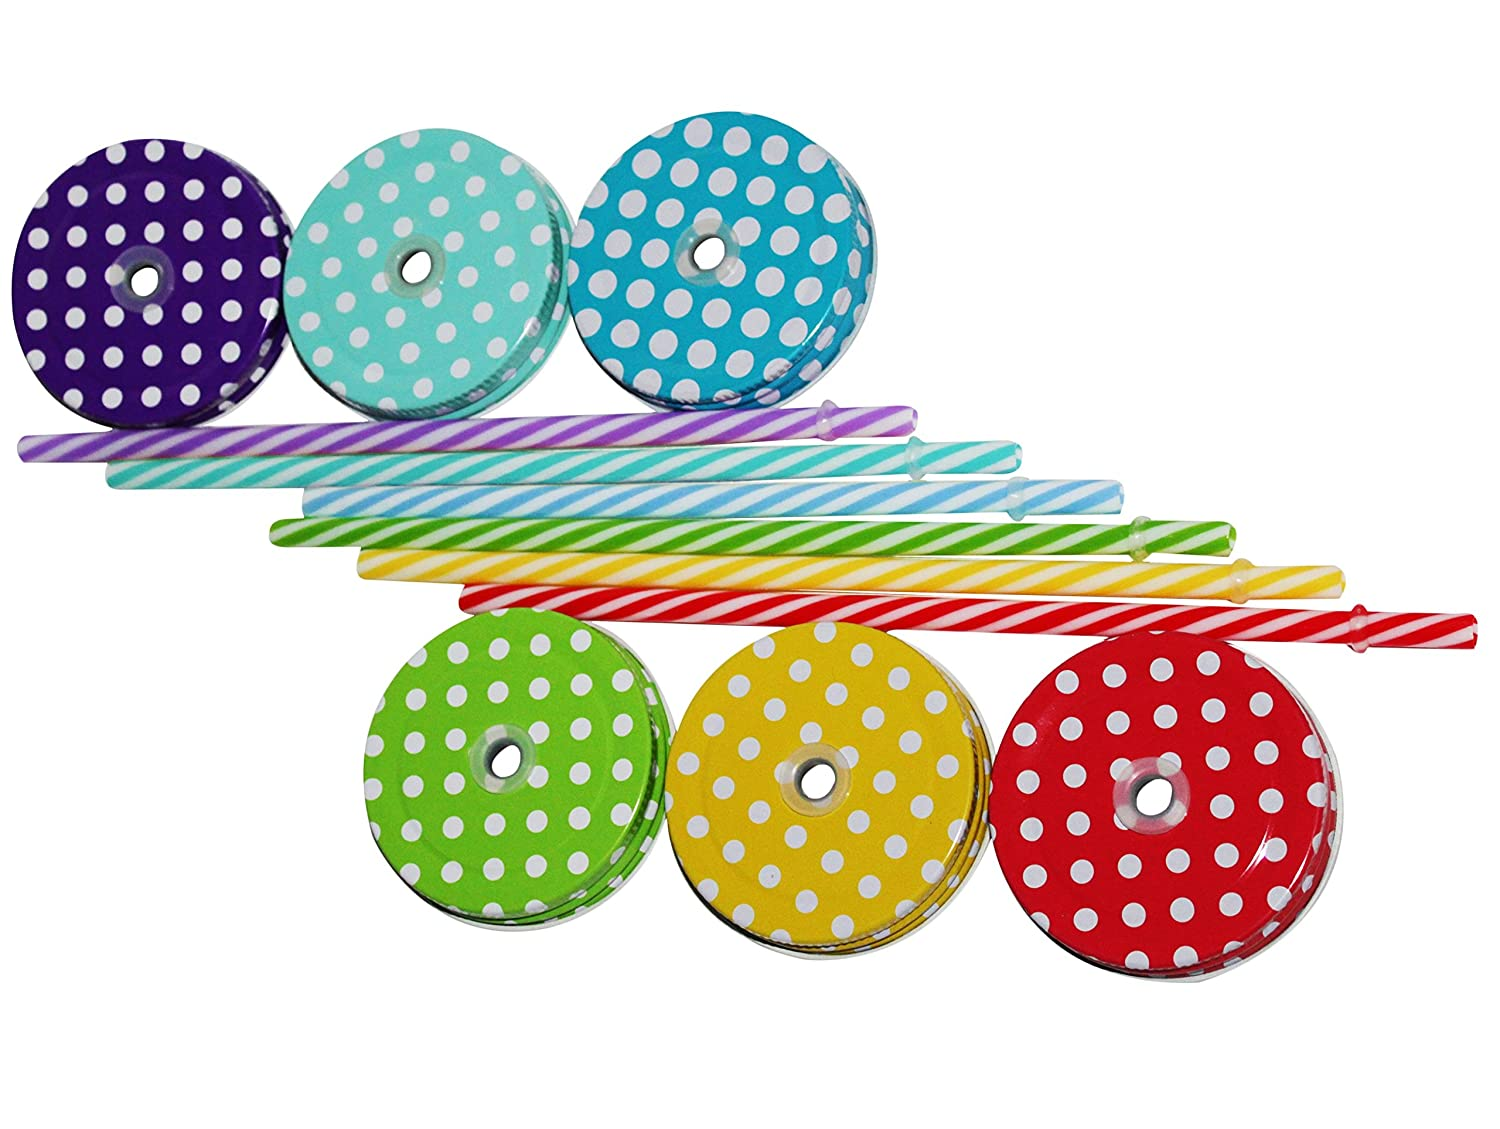 6-Pack Decorative Colored Polka-Dot Metal Lid With Straw Holes /& Striped Plastic Straw Set Amazing Set Of 6 Lids /& 6 Straws For Regular Mouth Mason Jar Glasses Mixed